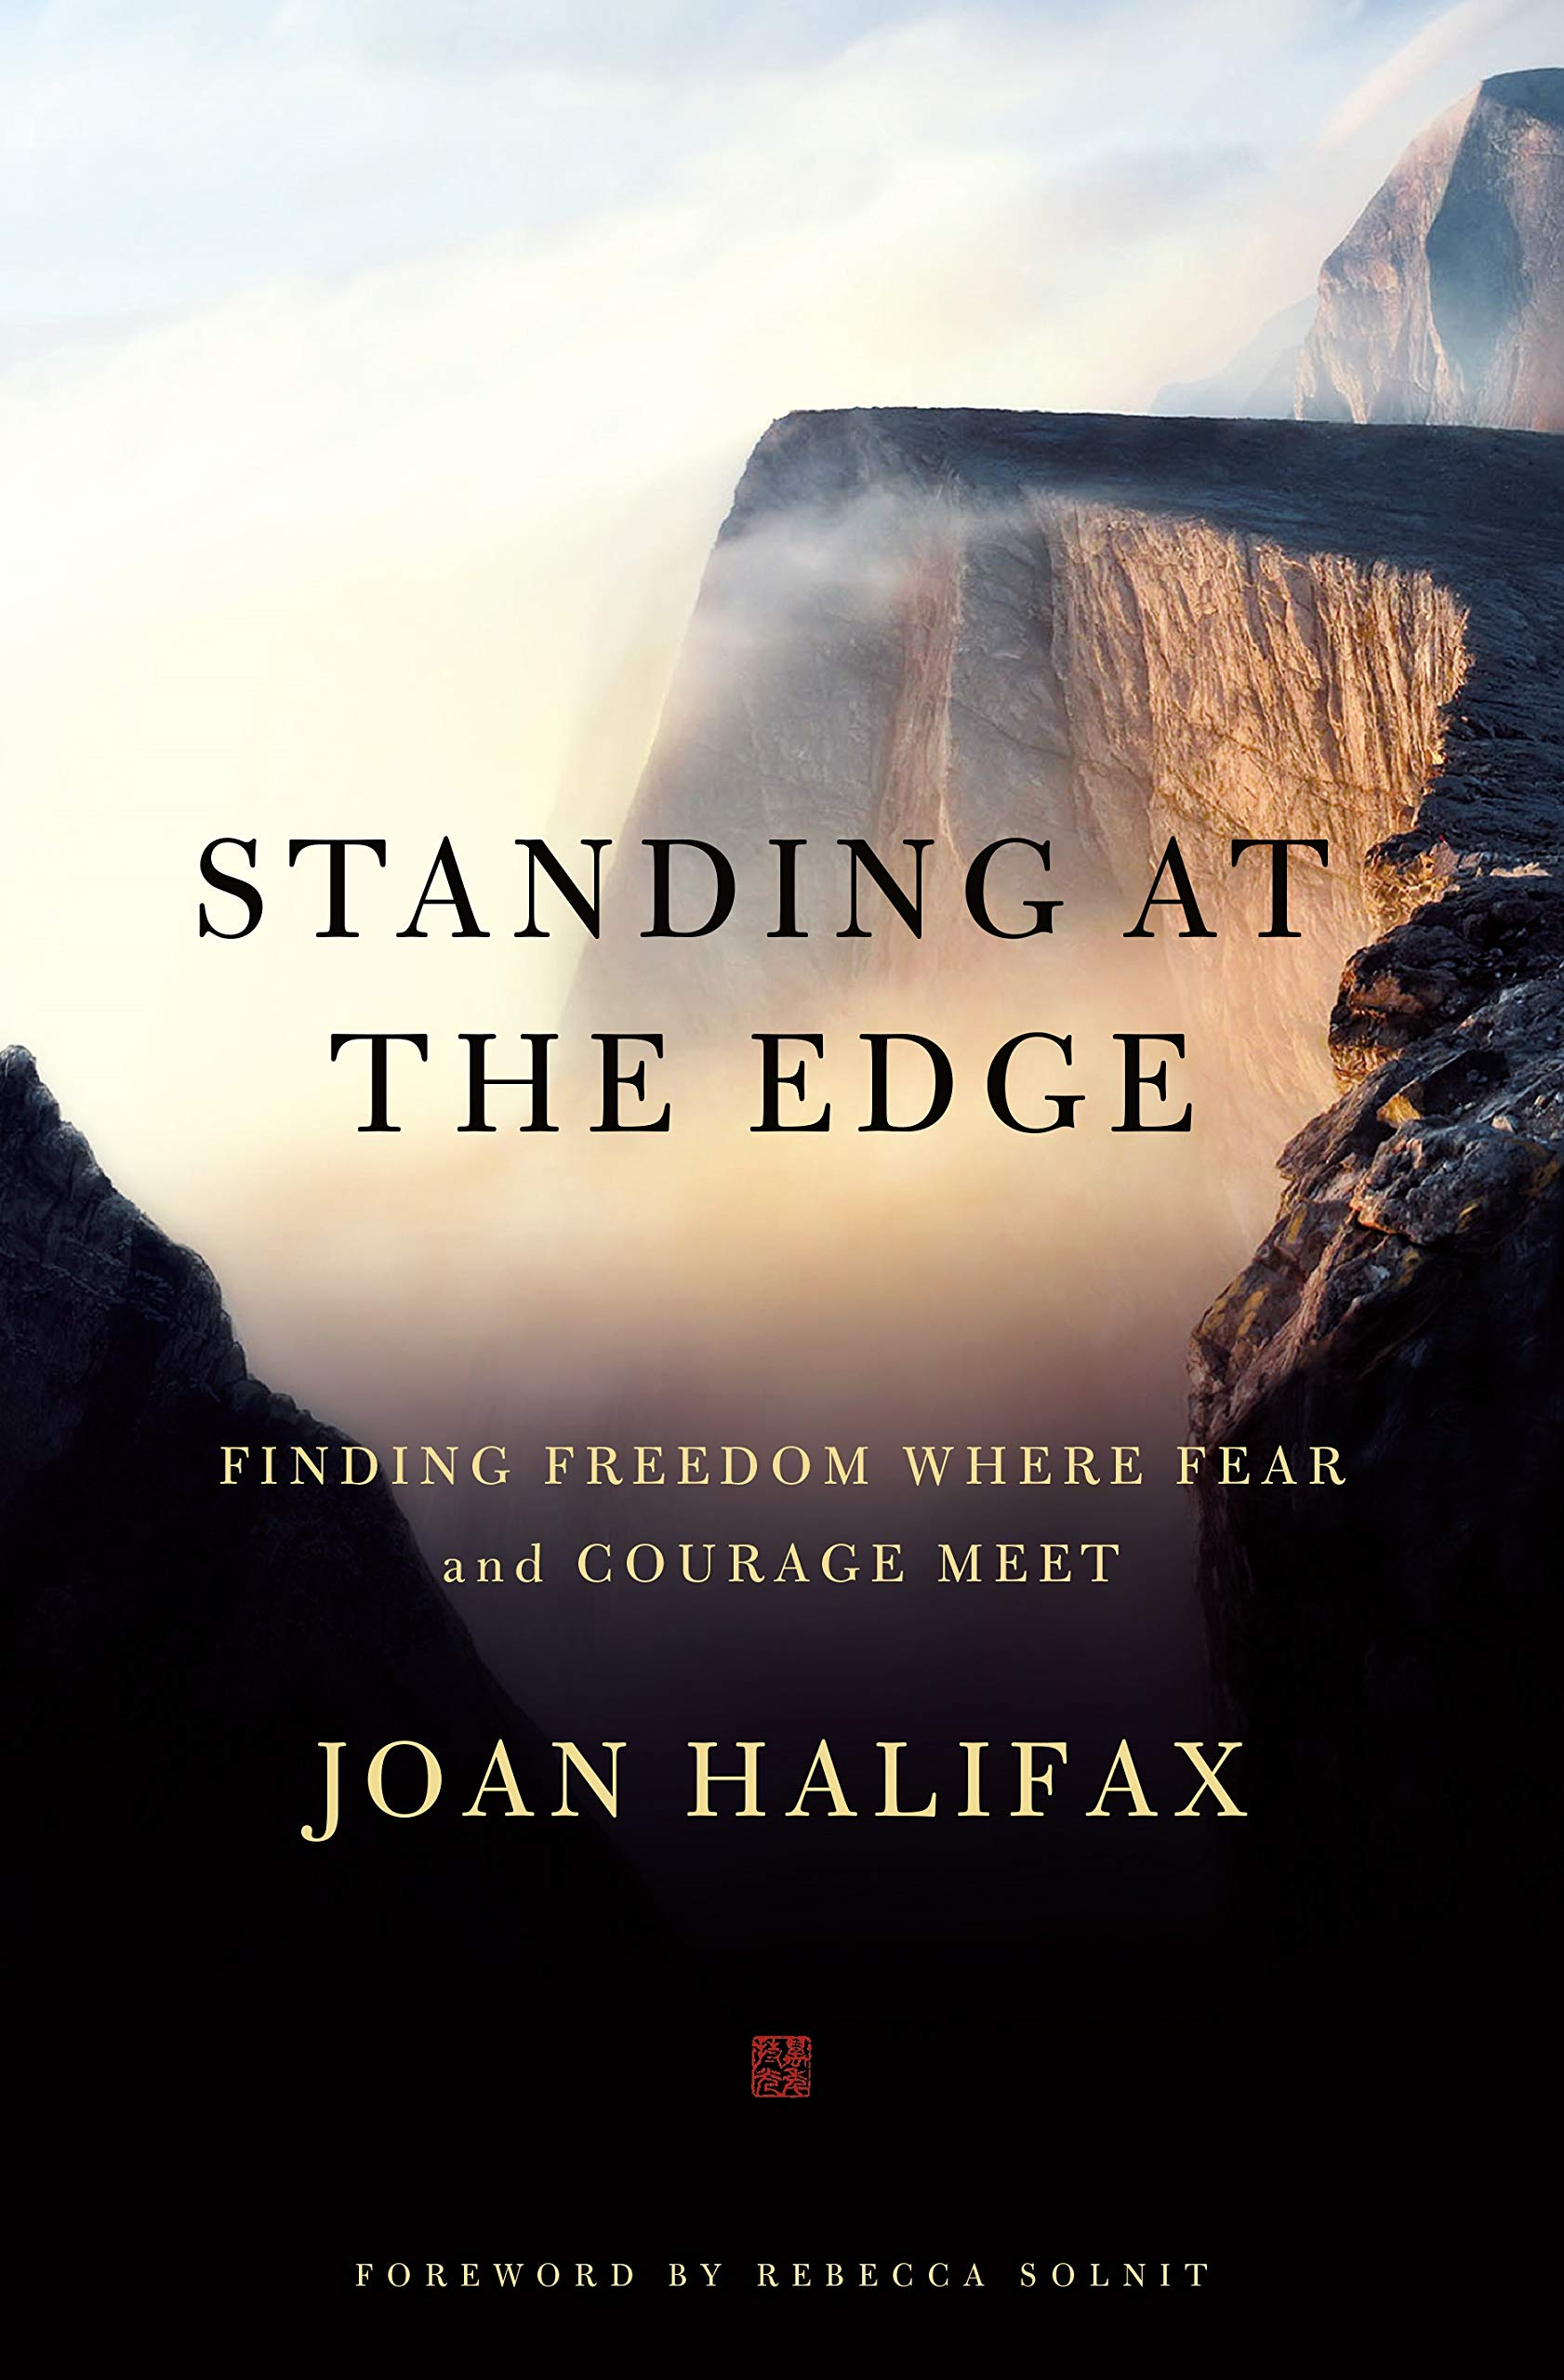 Standing at the Edge: Finding Freedom Where Fear and Courage